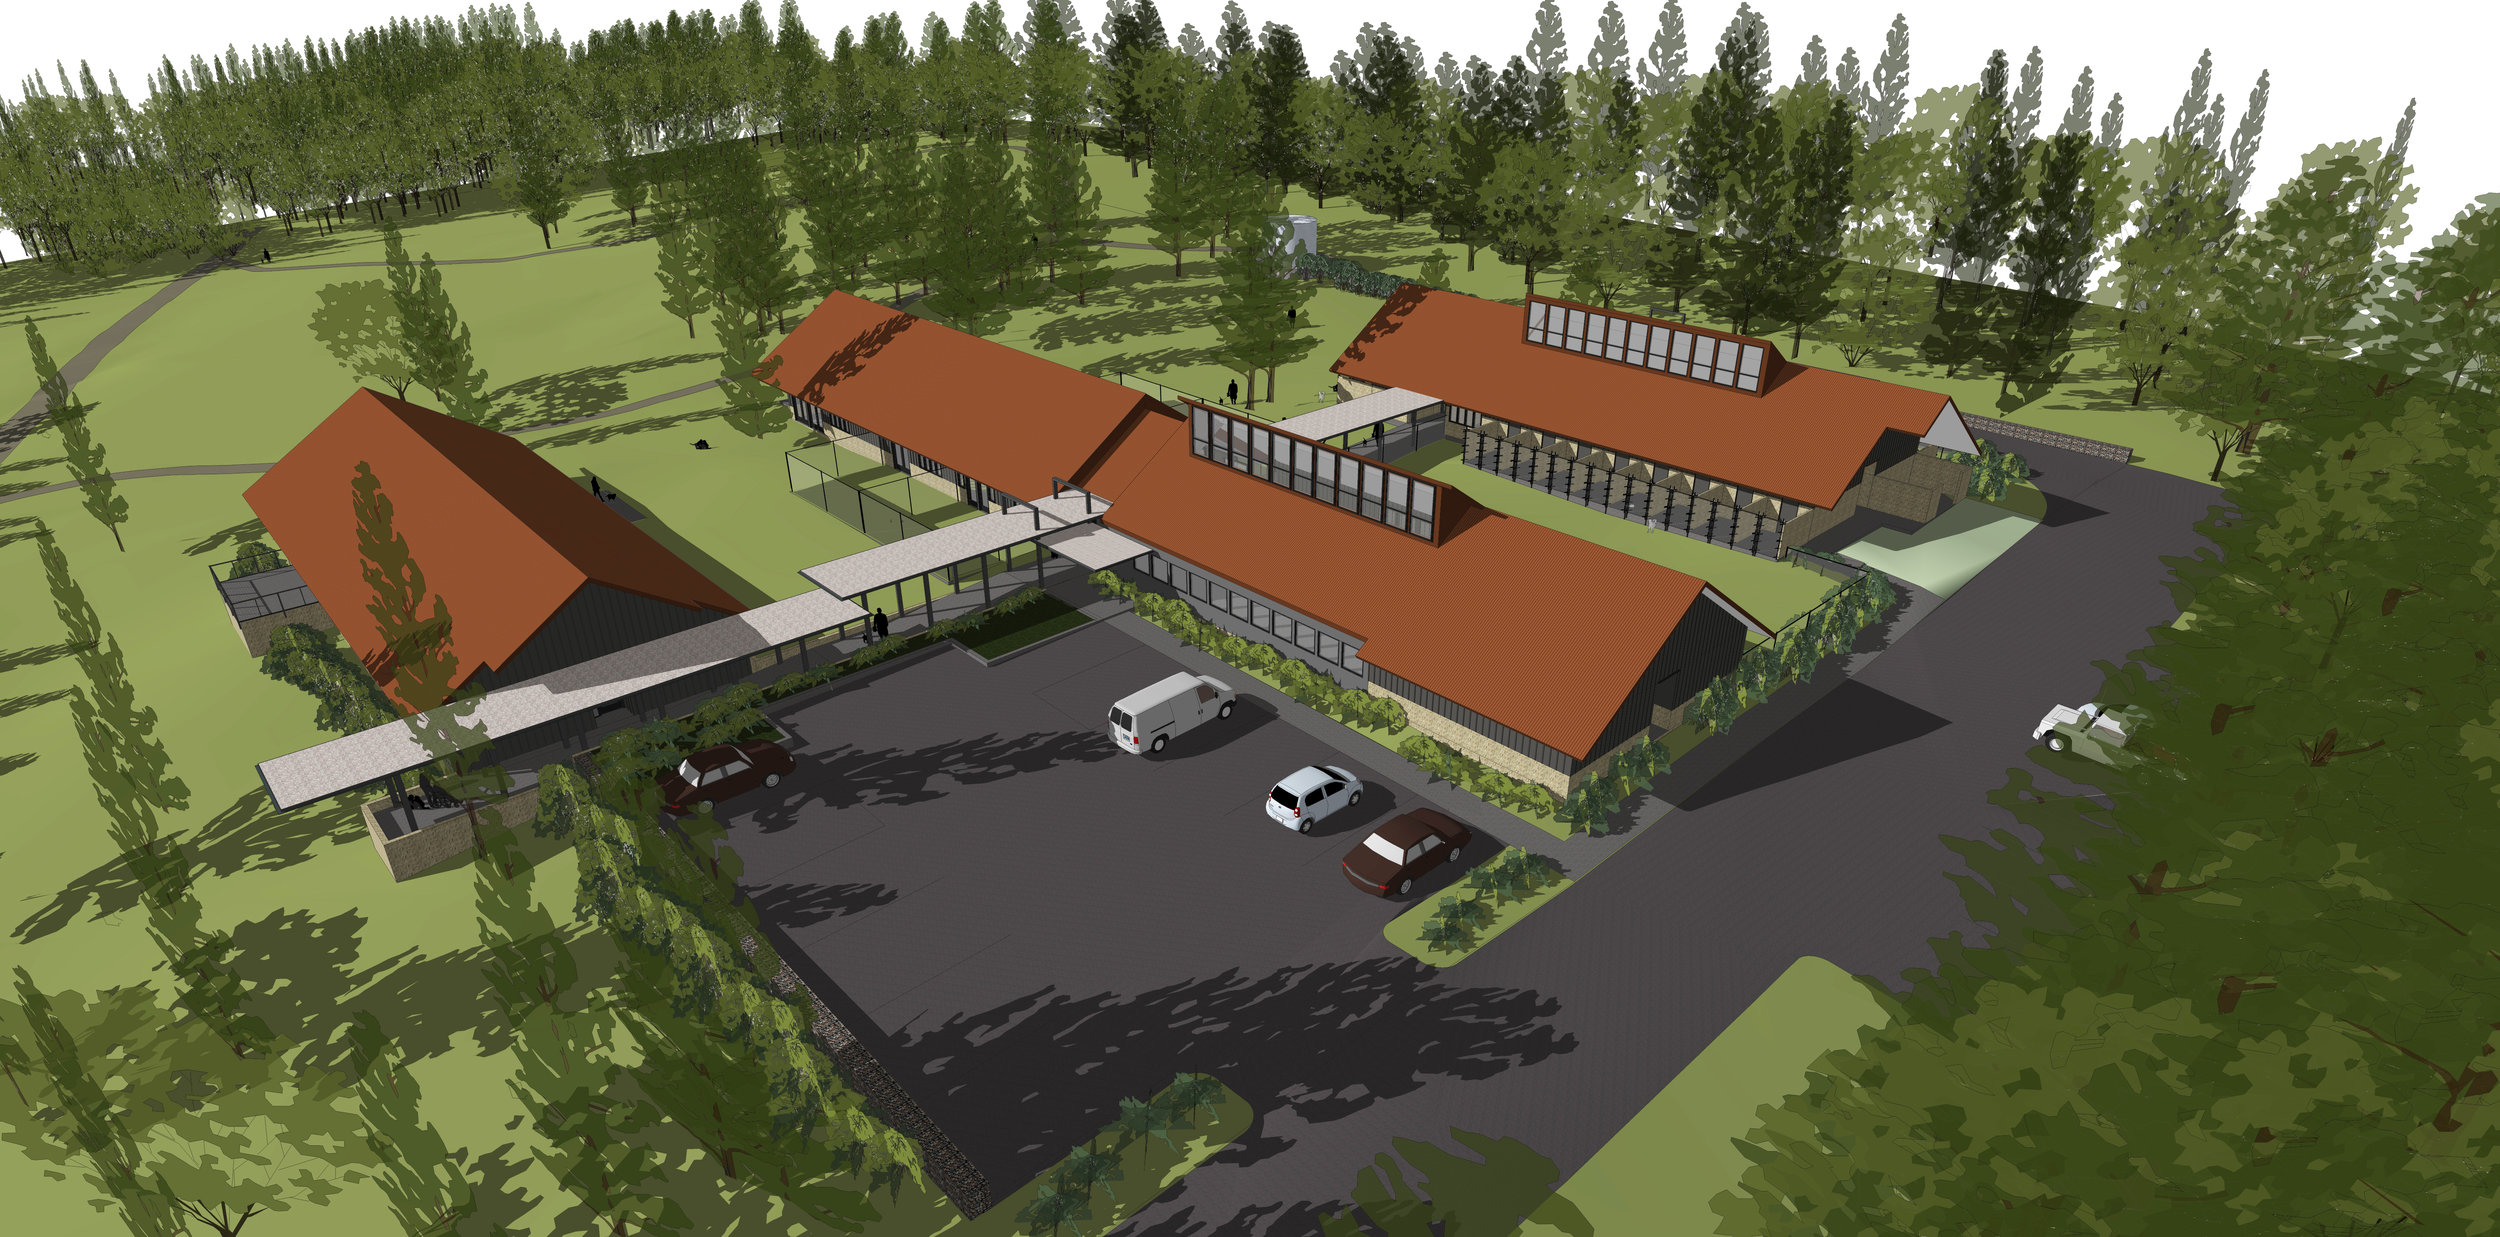 Campus site plan from north